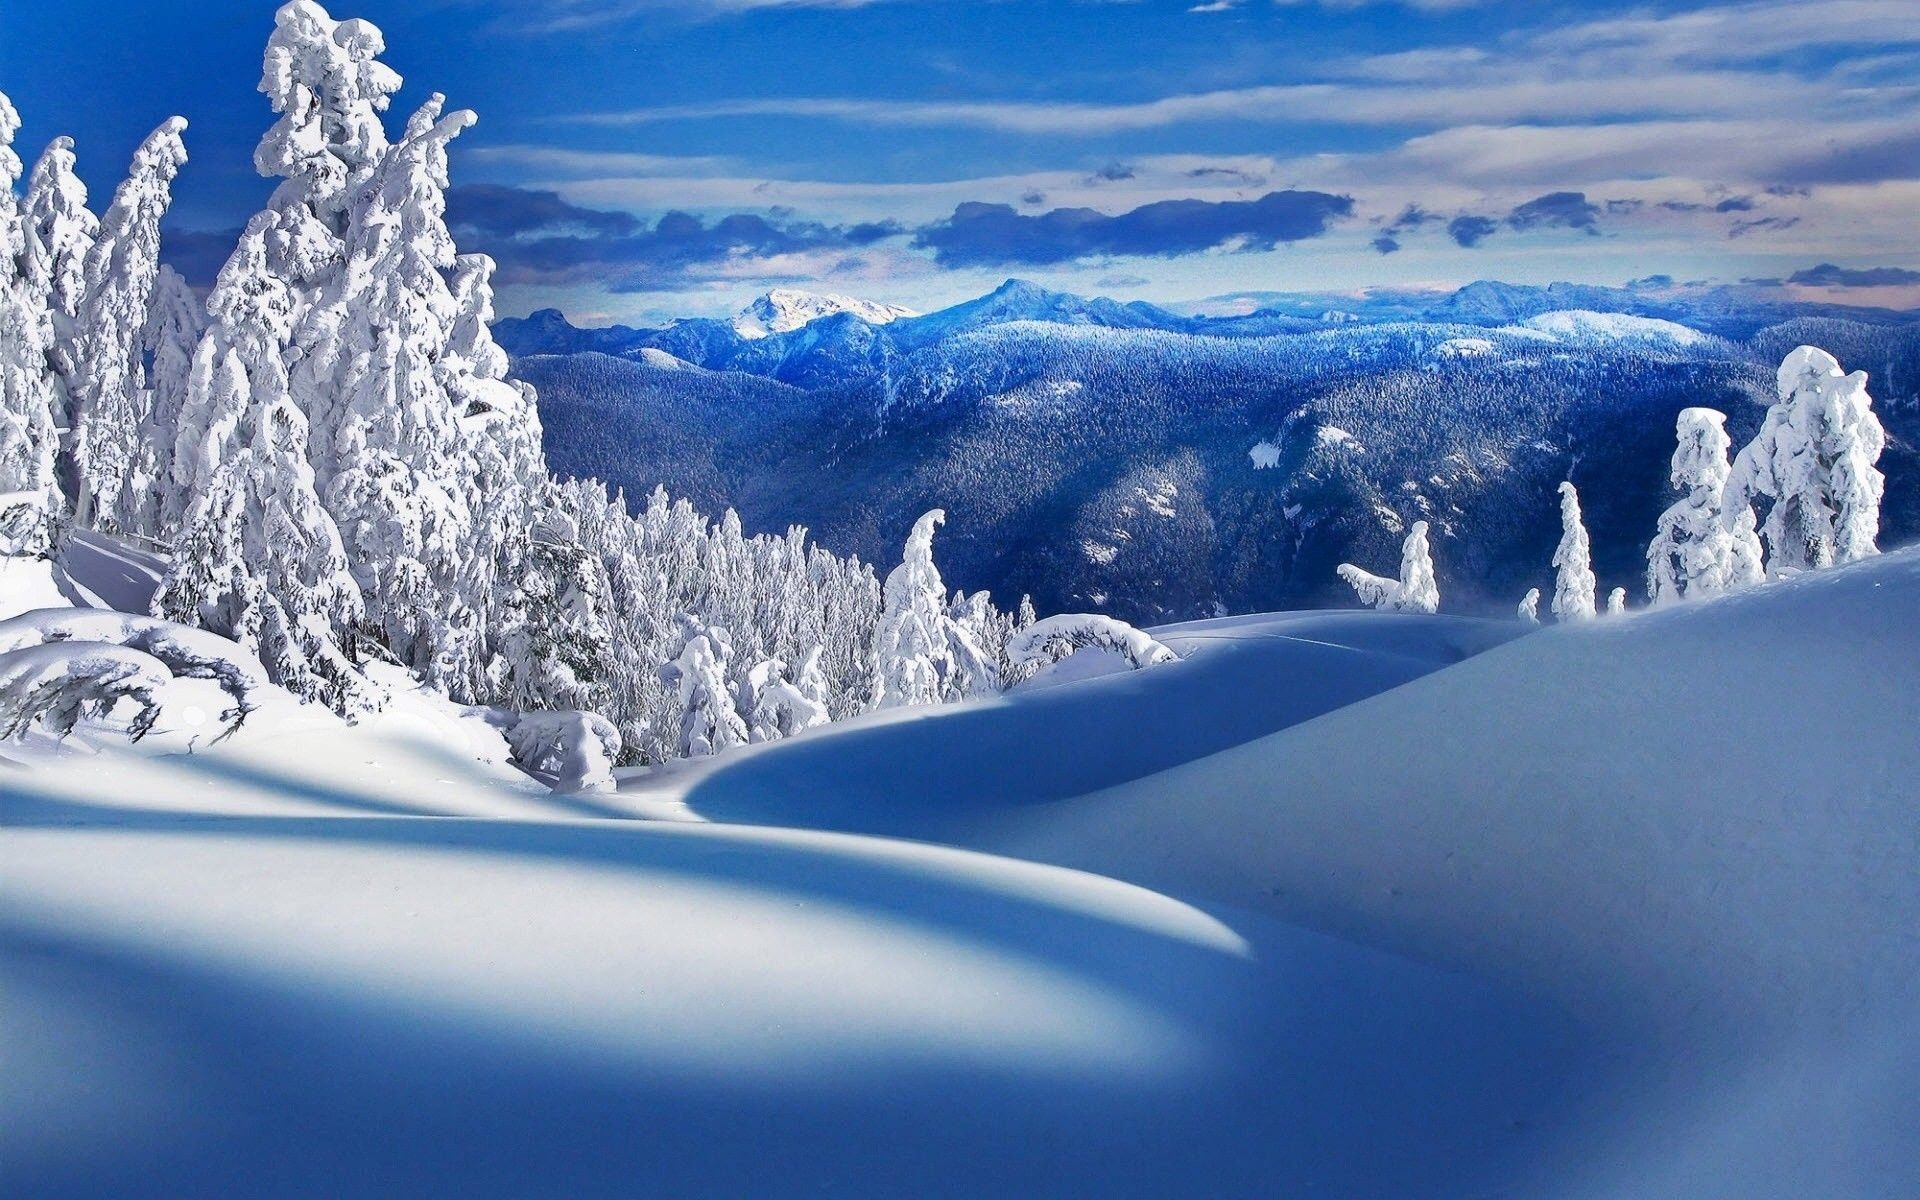 Christmas Snow Scene Wallpapers – Wallpaper Cave